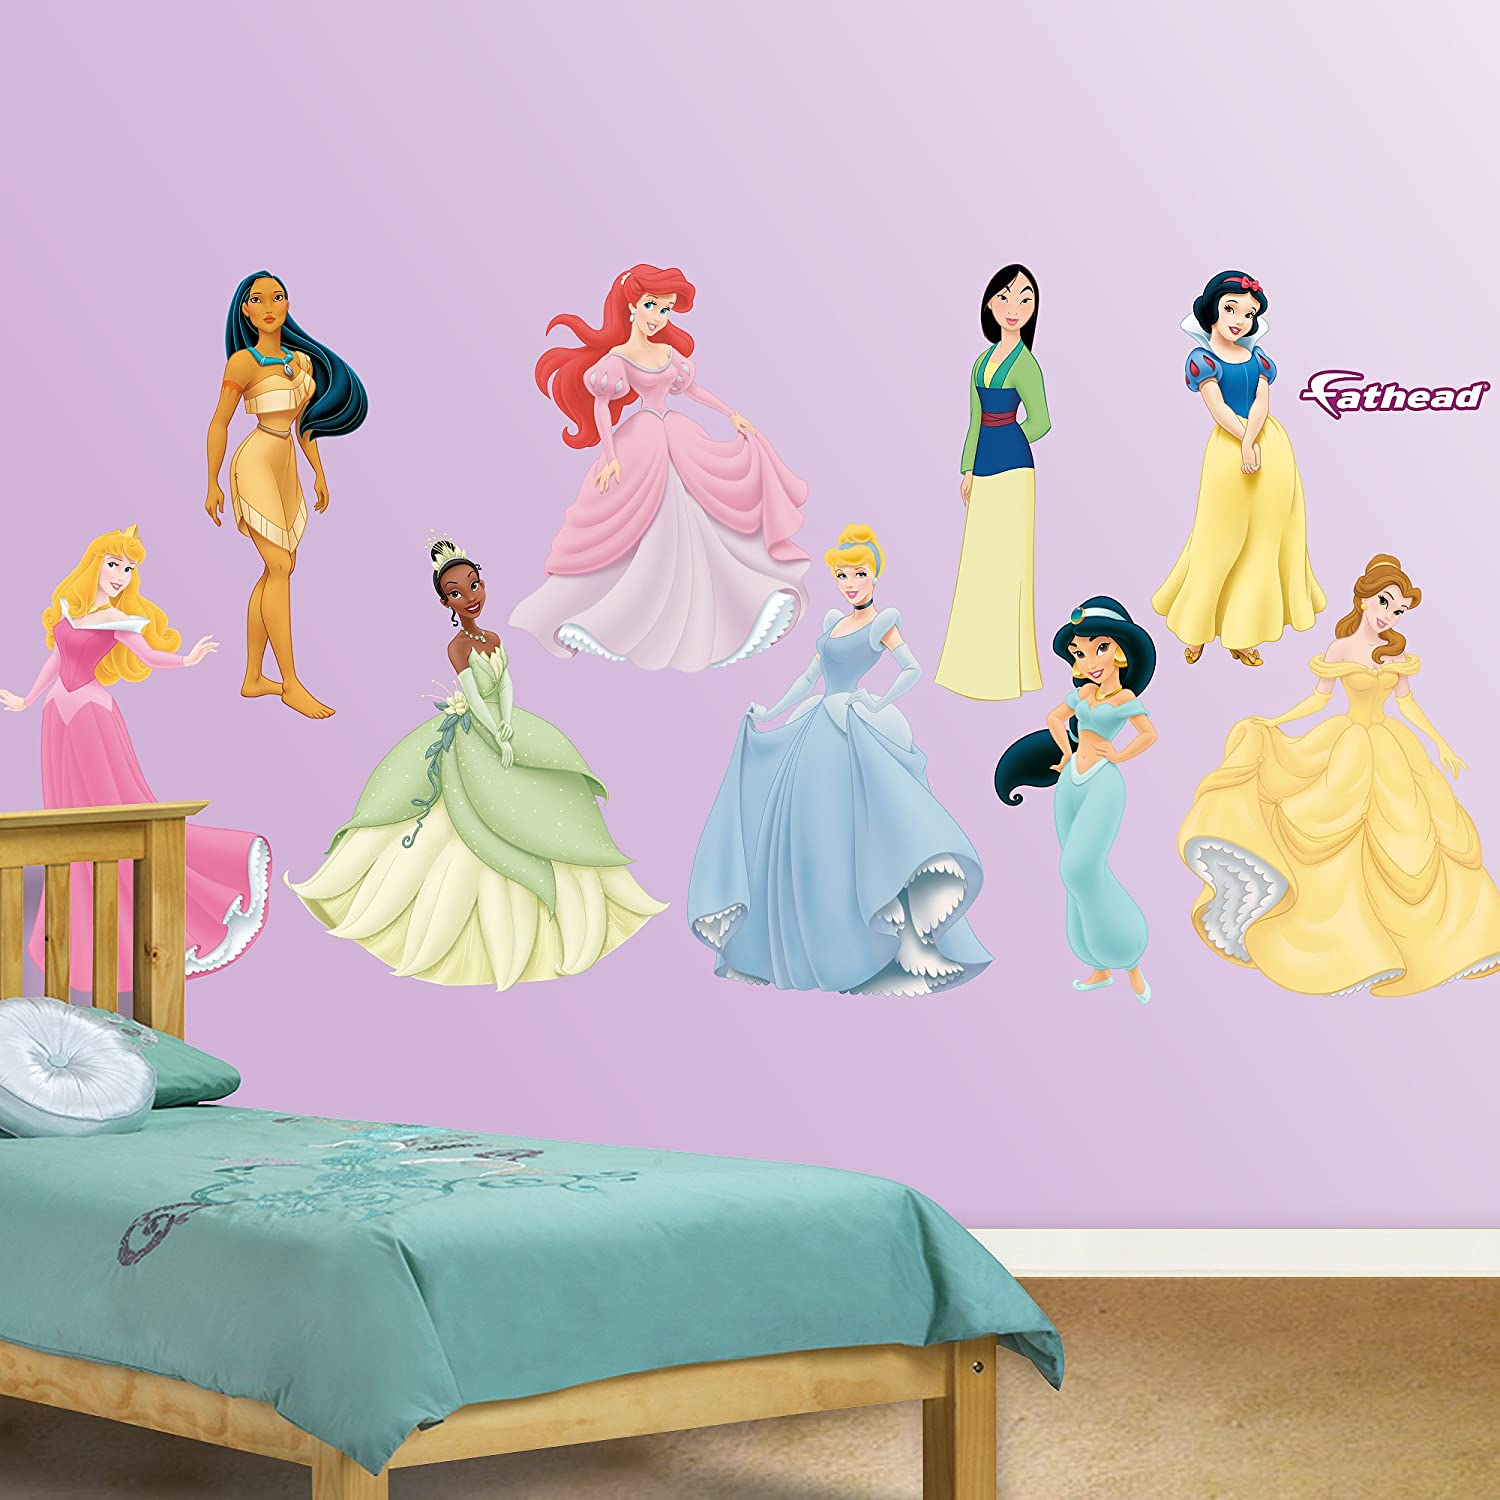 Amazon.com: FATHEAD Disney Princess Collection Graphic Wall Décor: Home U0026  Kitchen Part 40